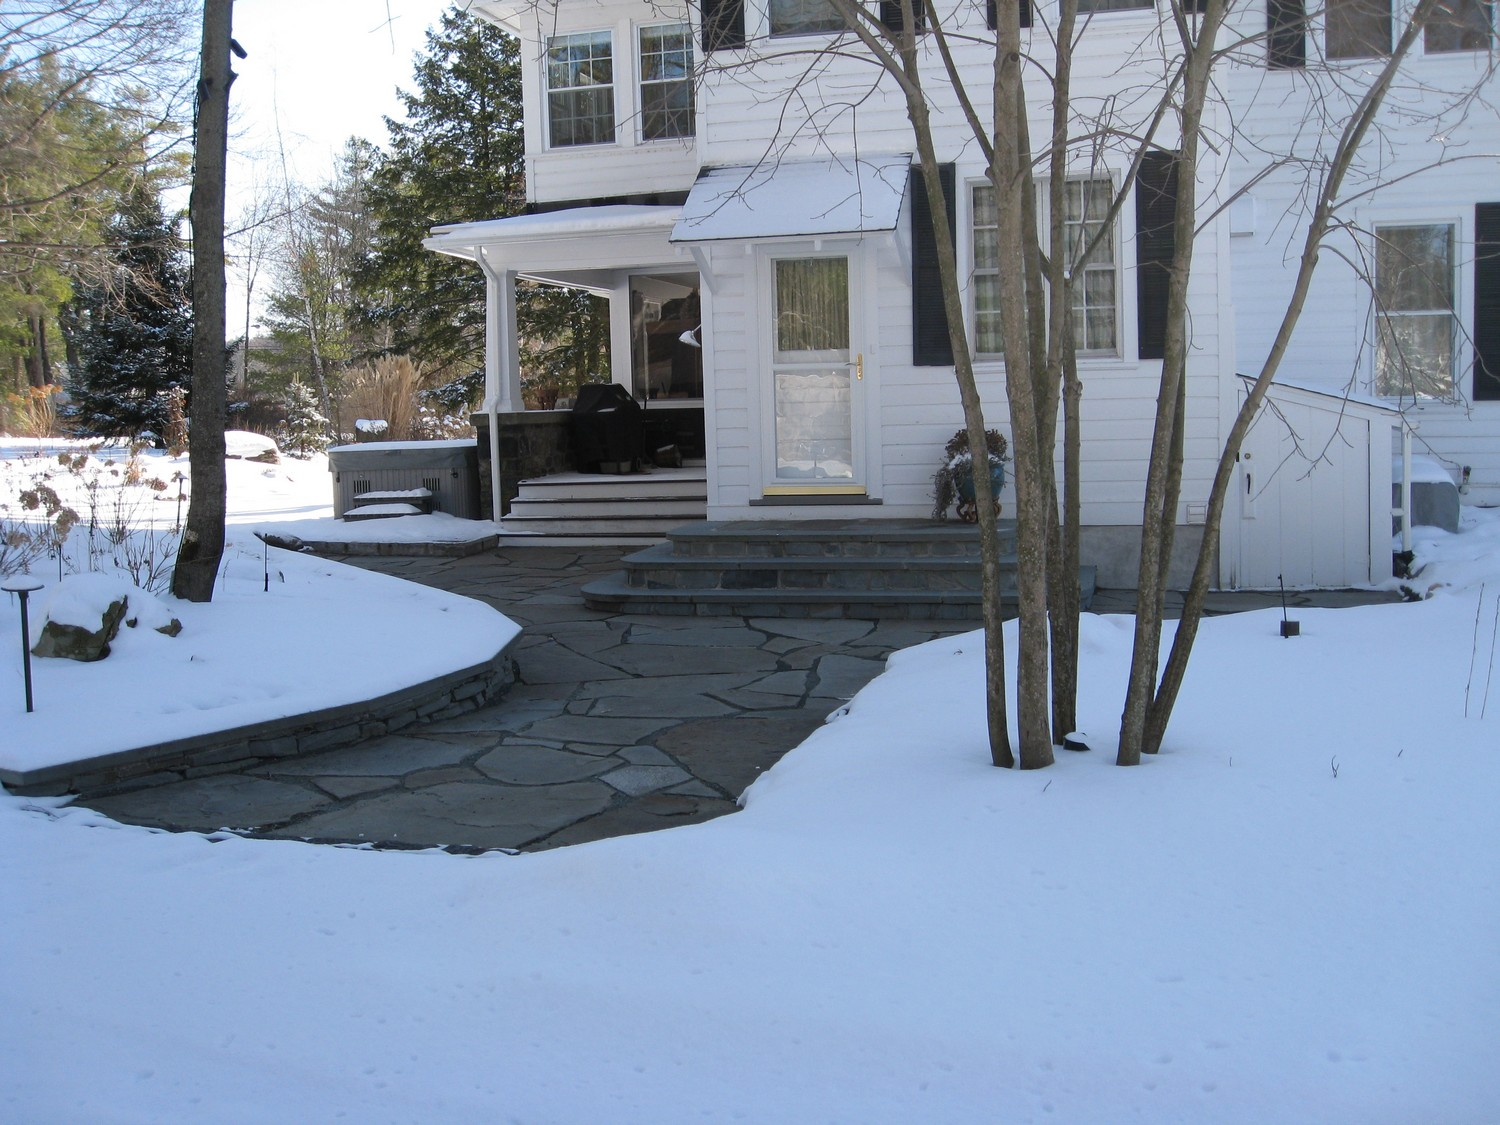 Bluestone patio and step design Averill Park, NY